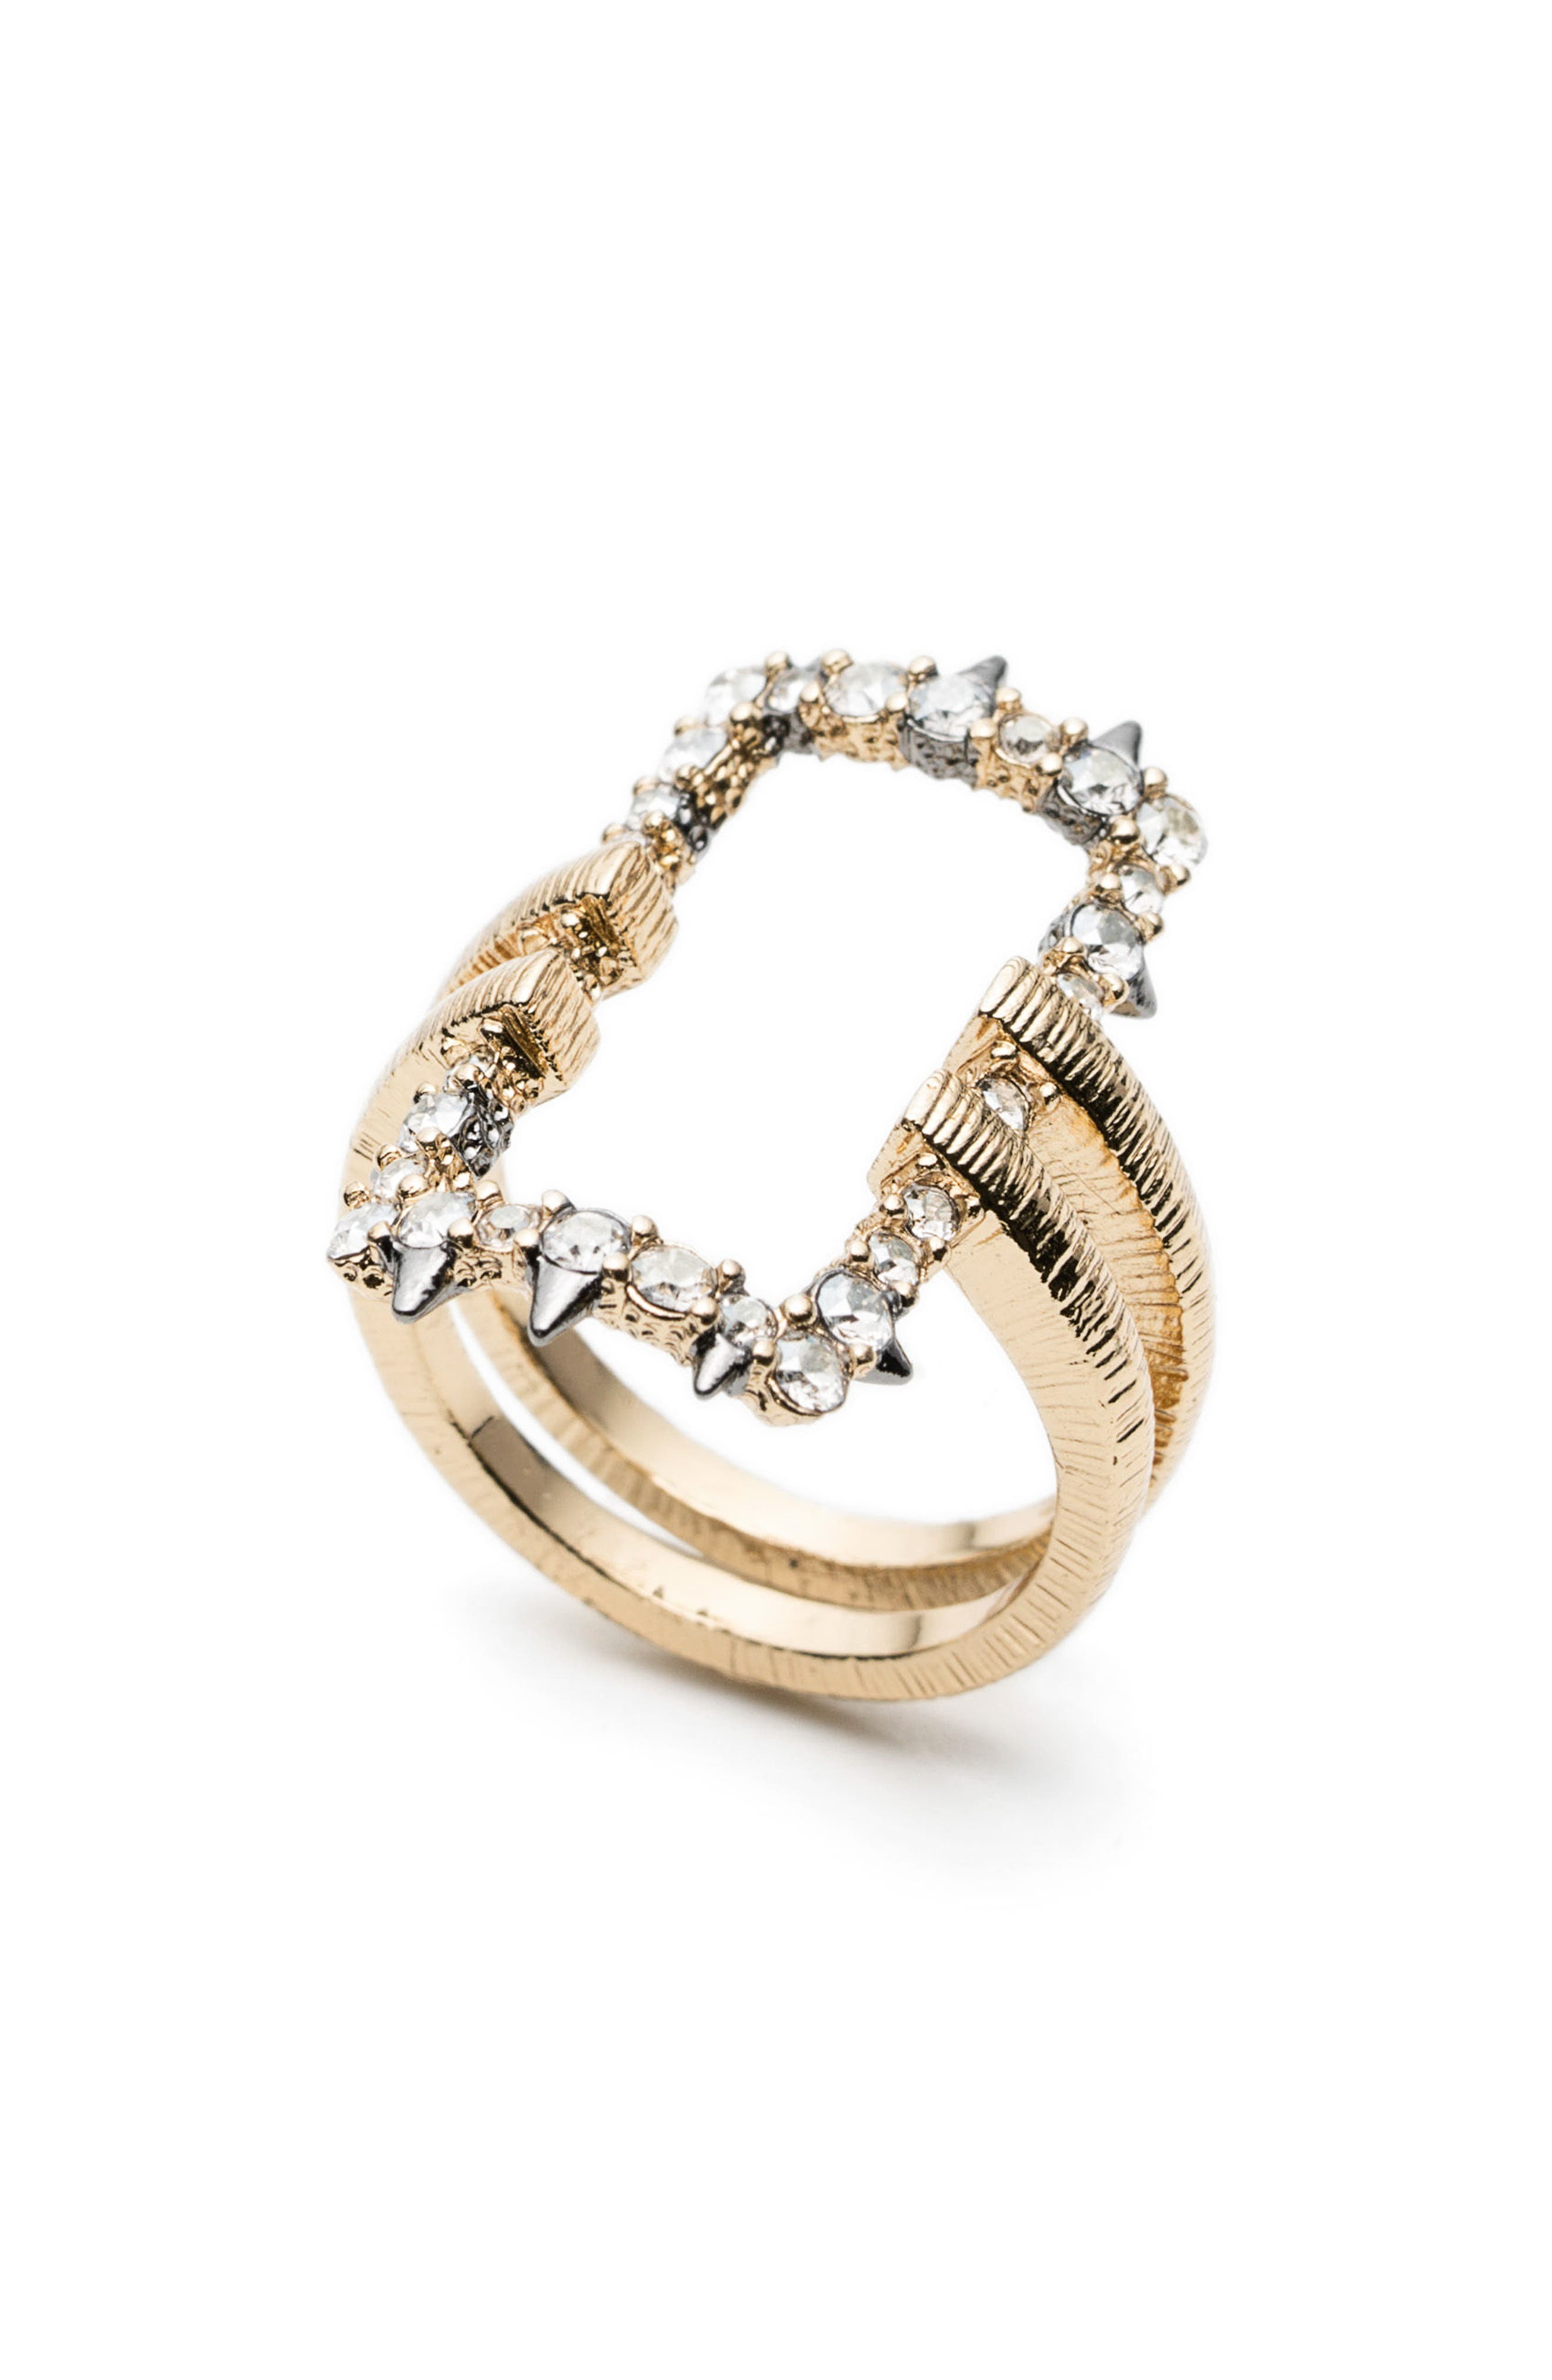 Elements Crystal Encrusted Ring,                             Alternate thumbnail 2, color,                             Gold